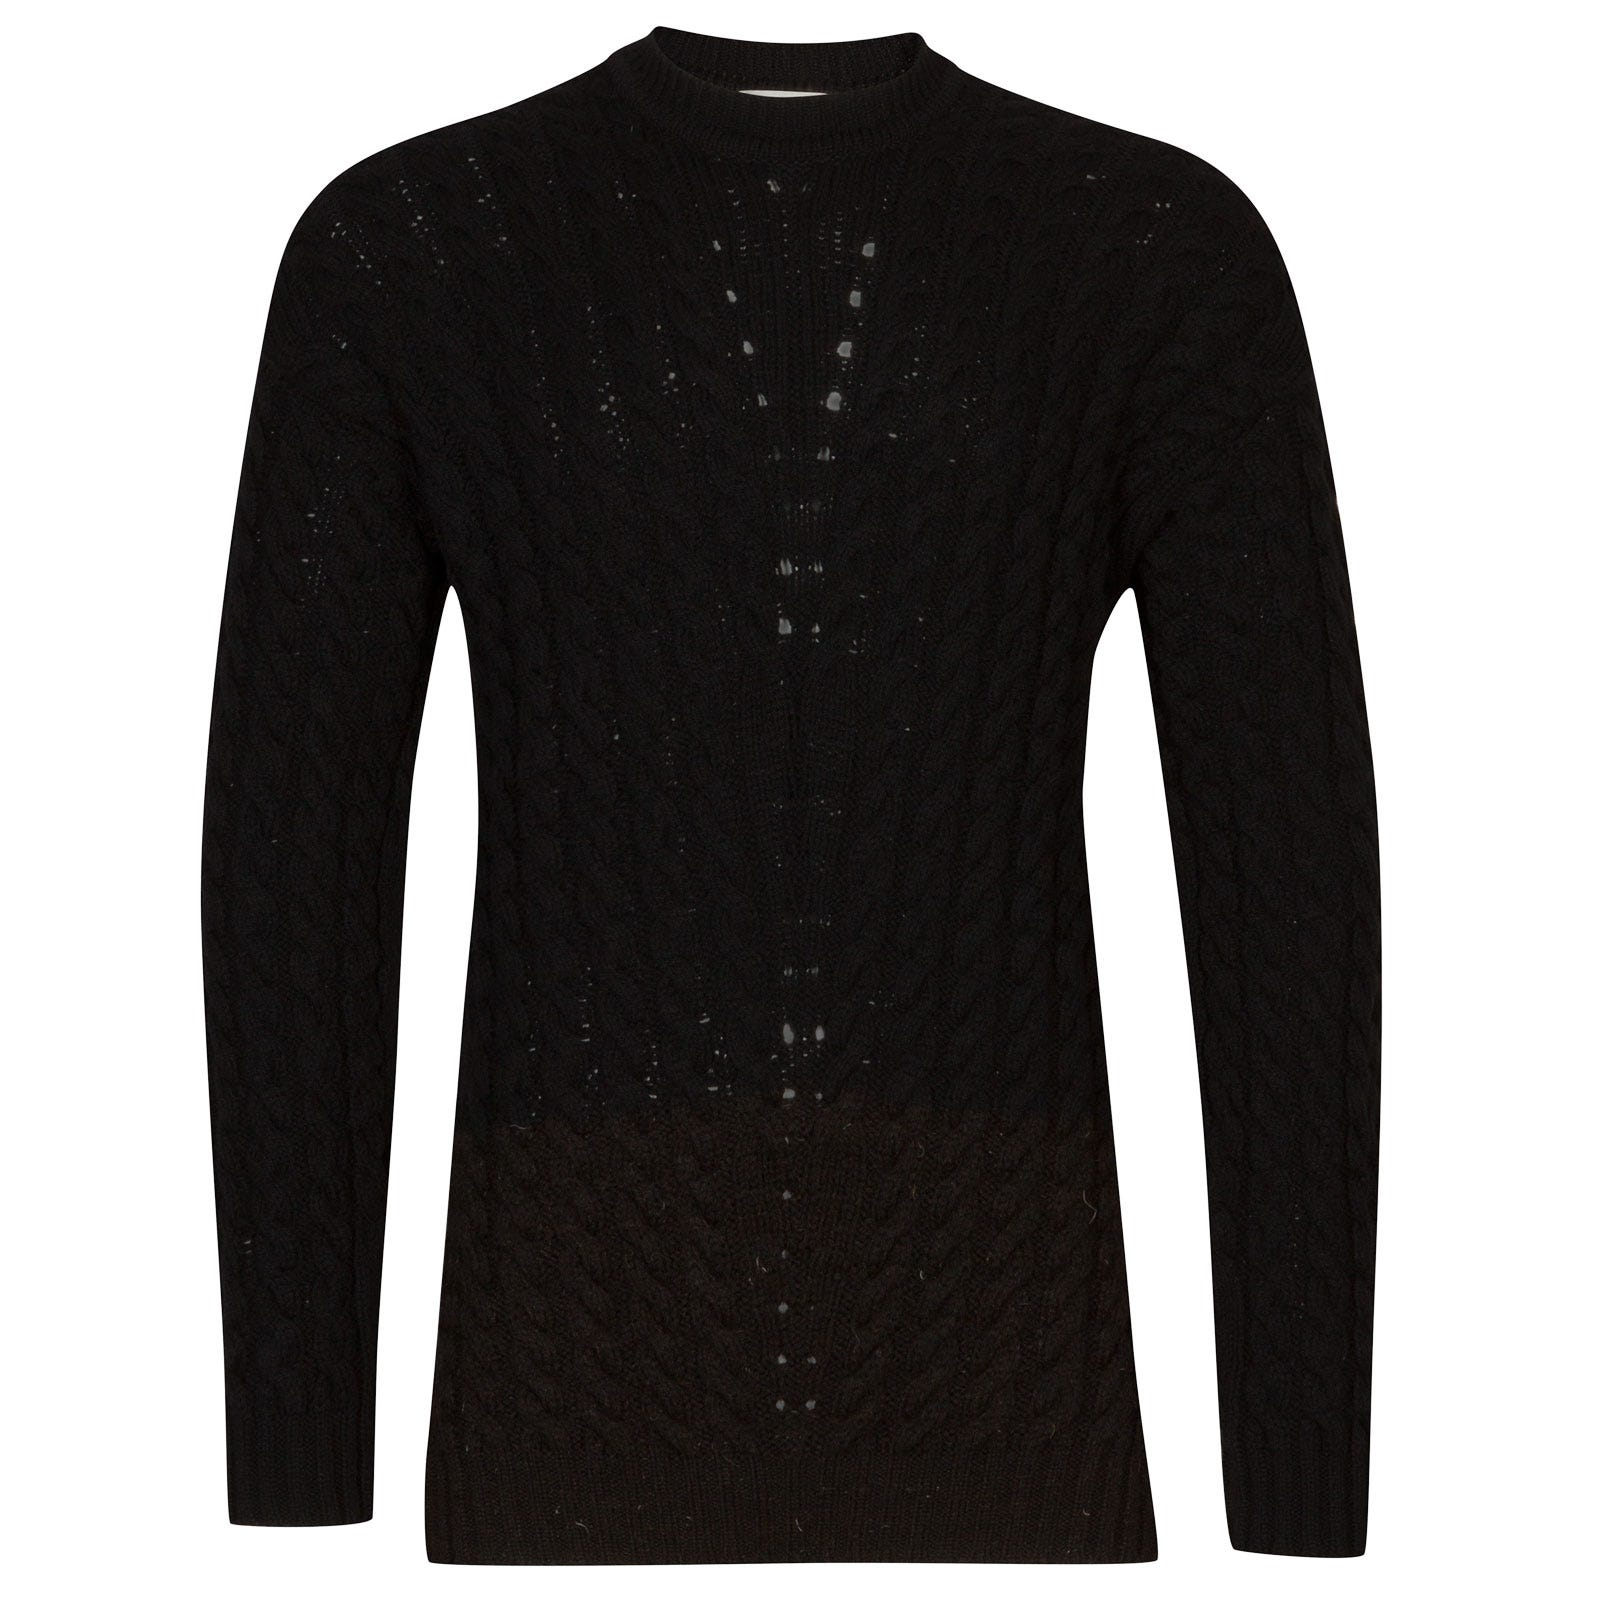 John Smedley brecon British Wool & Cashmere Wool Pullover in Black-M